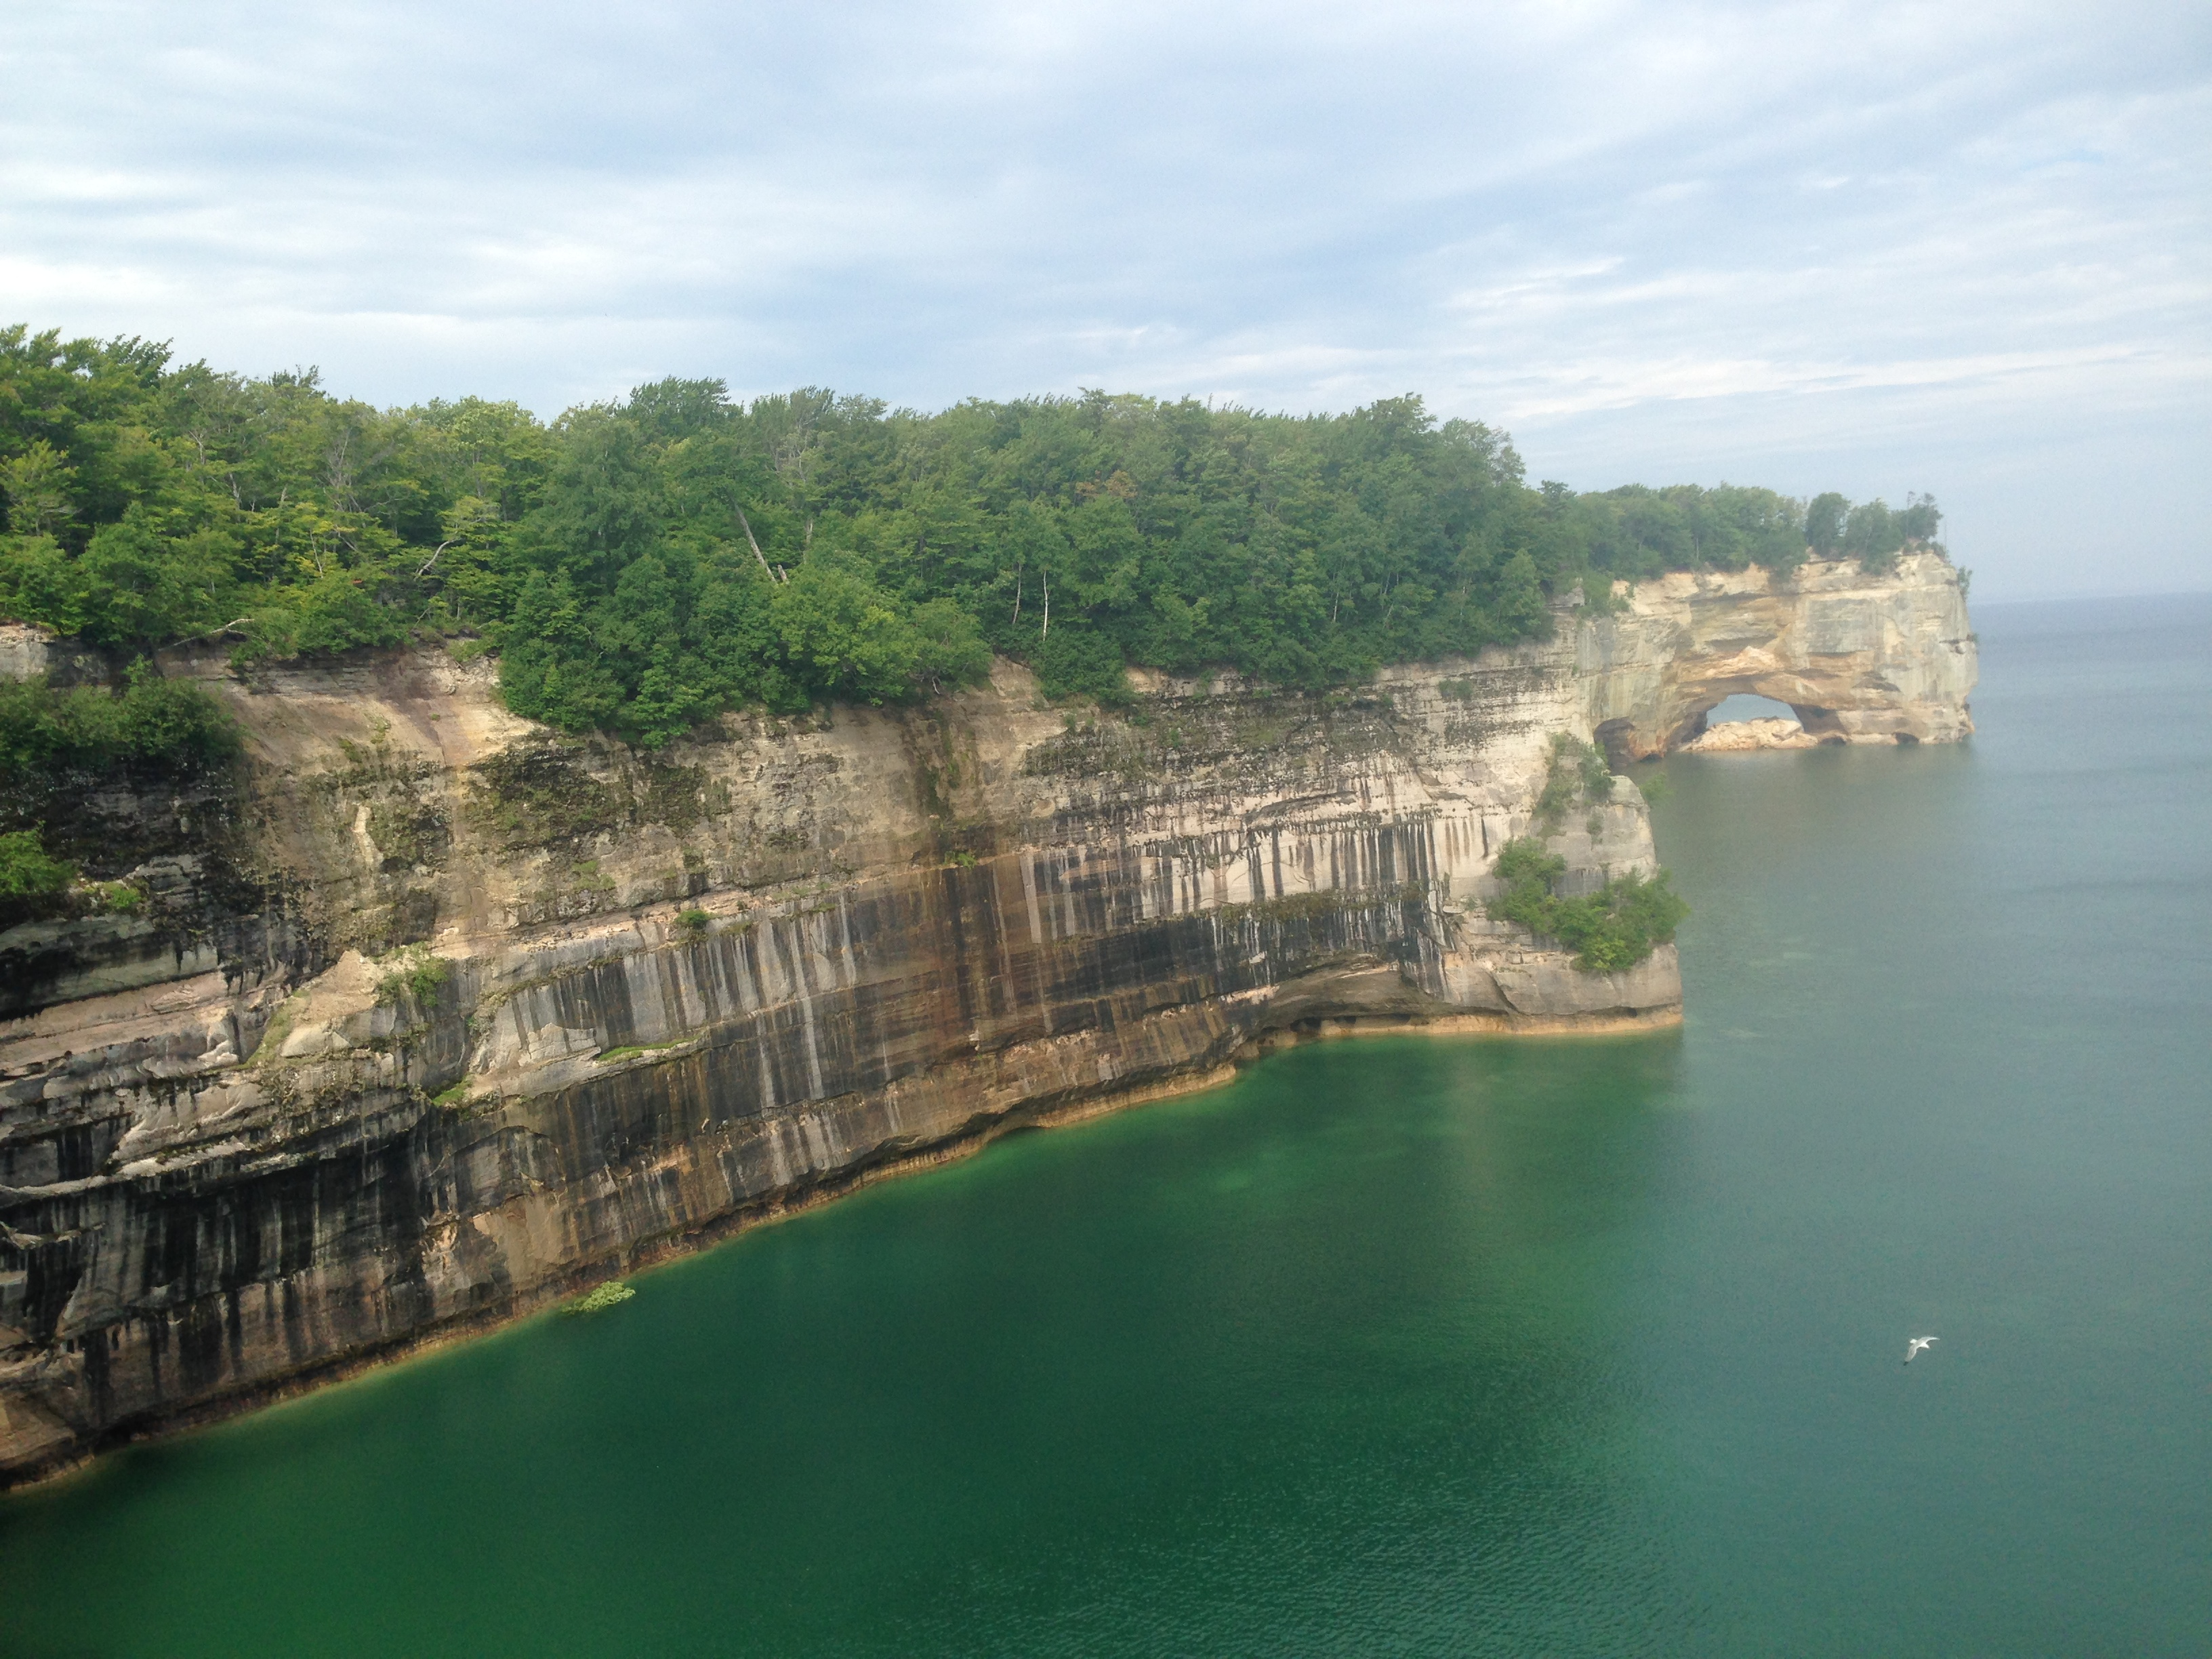 Pictured Rocks, Upper Peninsula, Michigan: On The Trail And Near The Edge